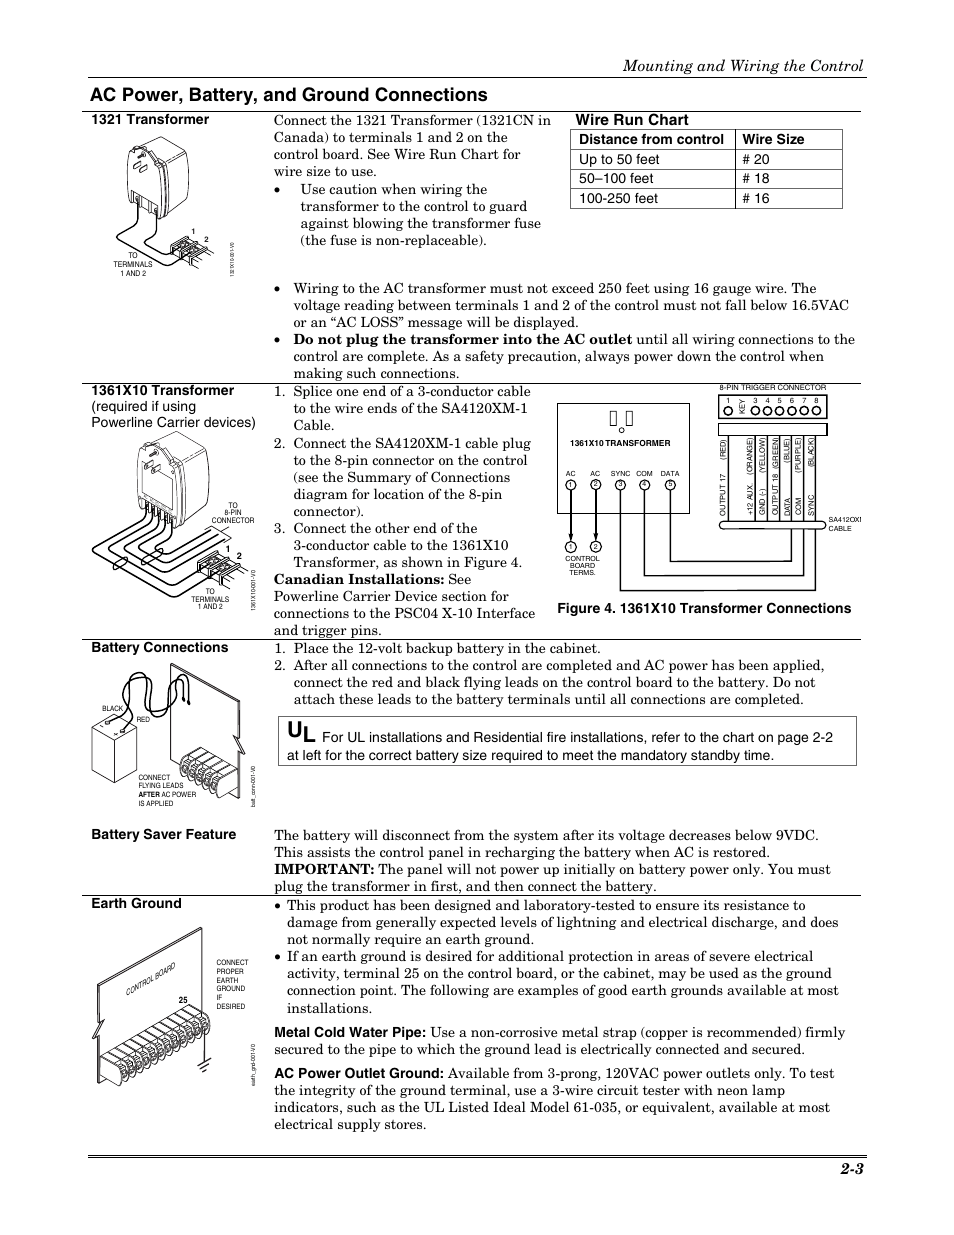 medium resolution of ac power battery and ground connections wire run chart mounting and wiring the control 2 3 honeywell vista 20p user manual page 9 80